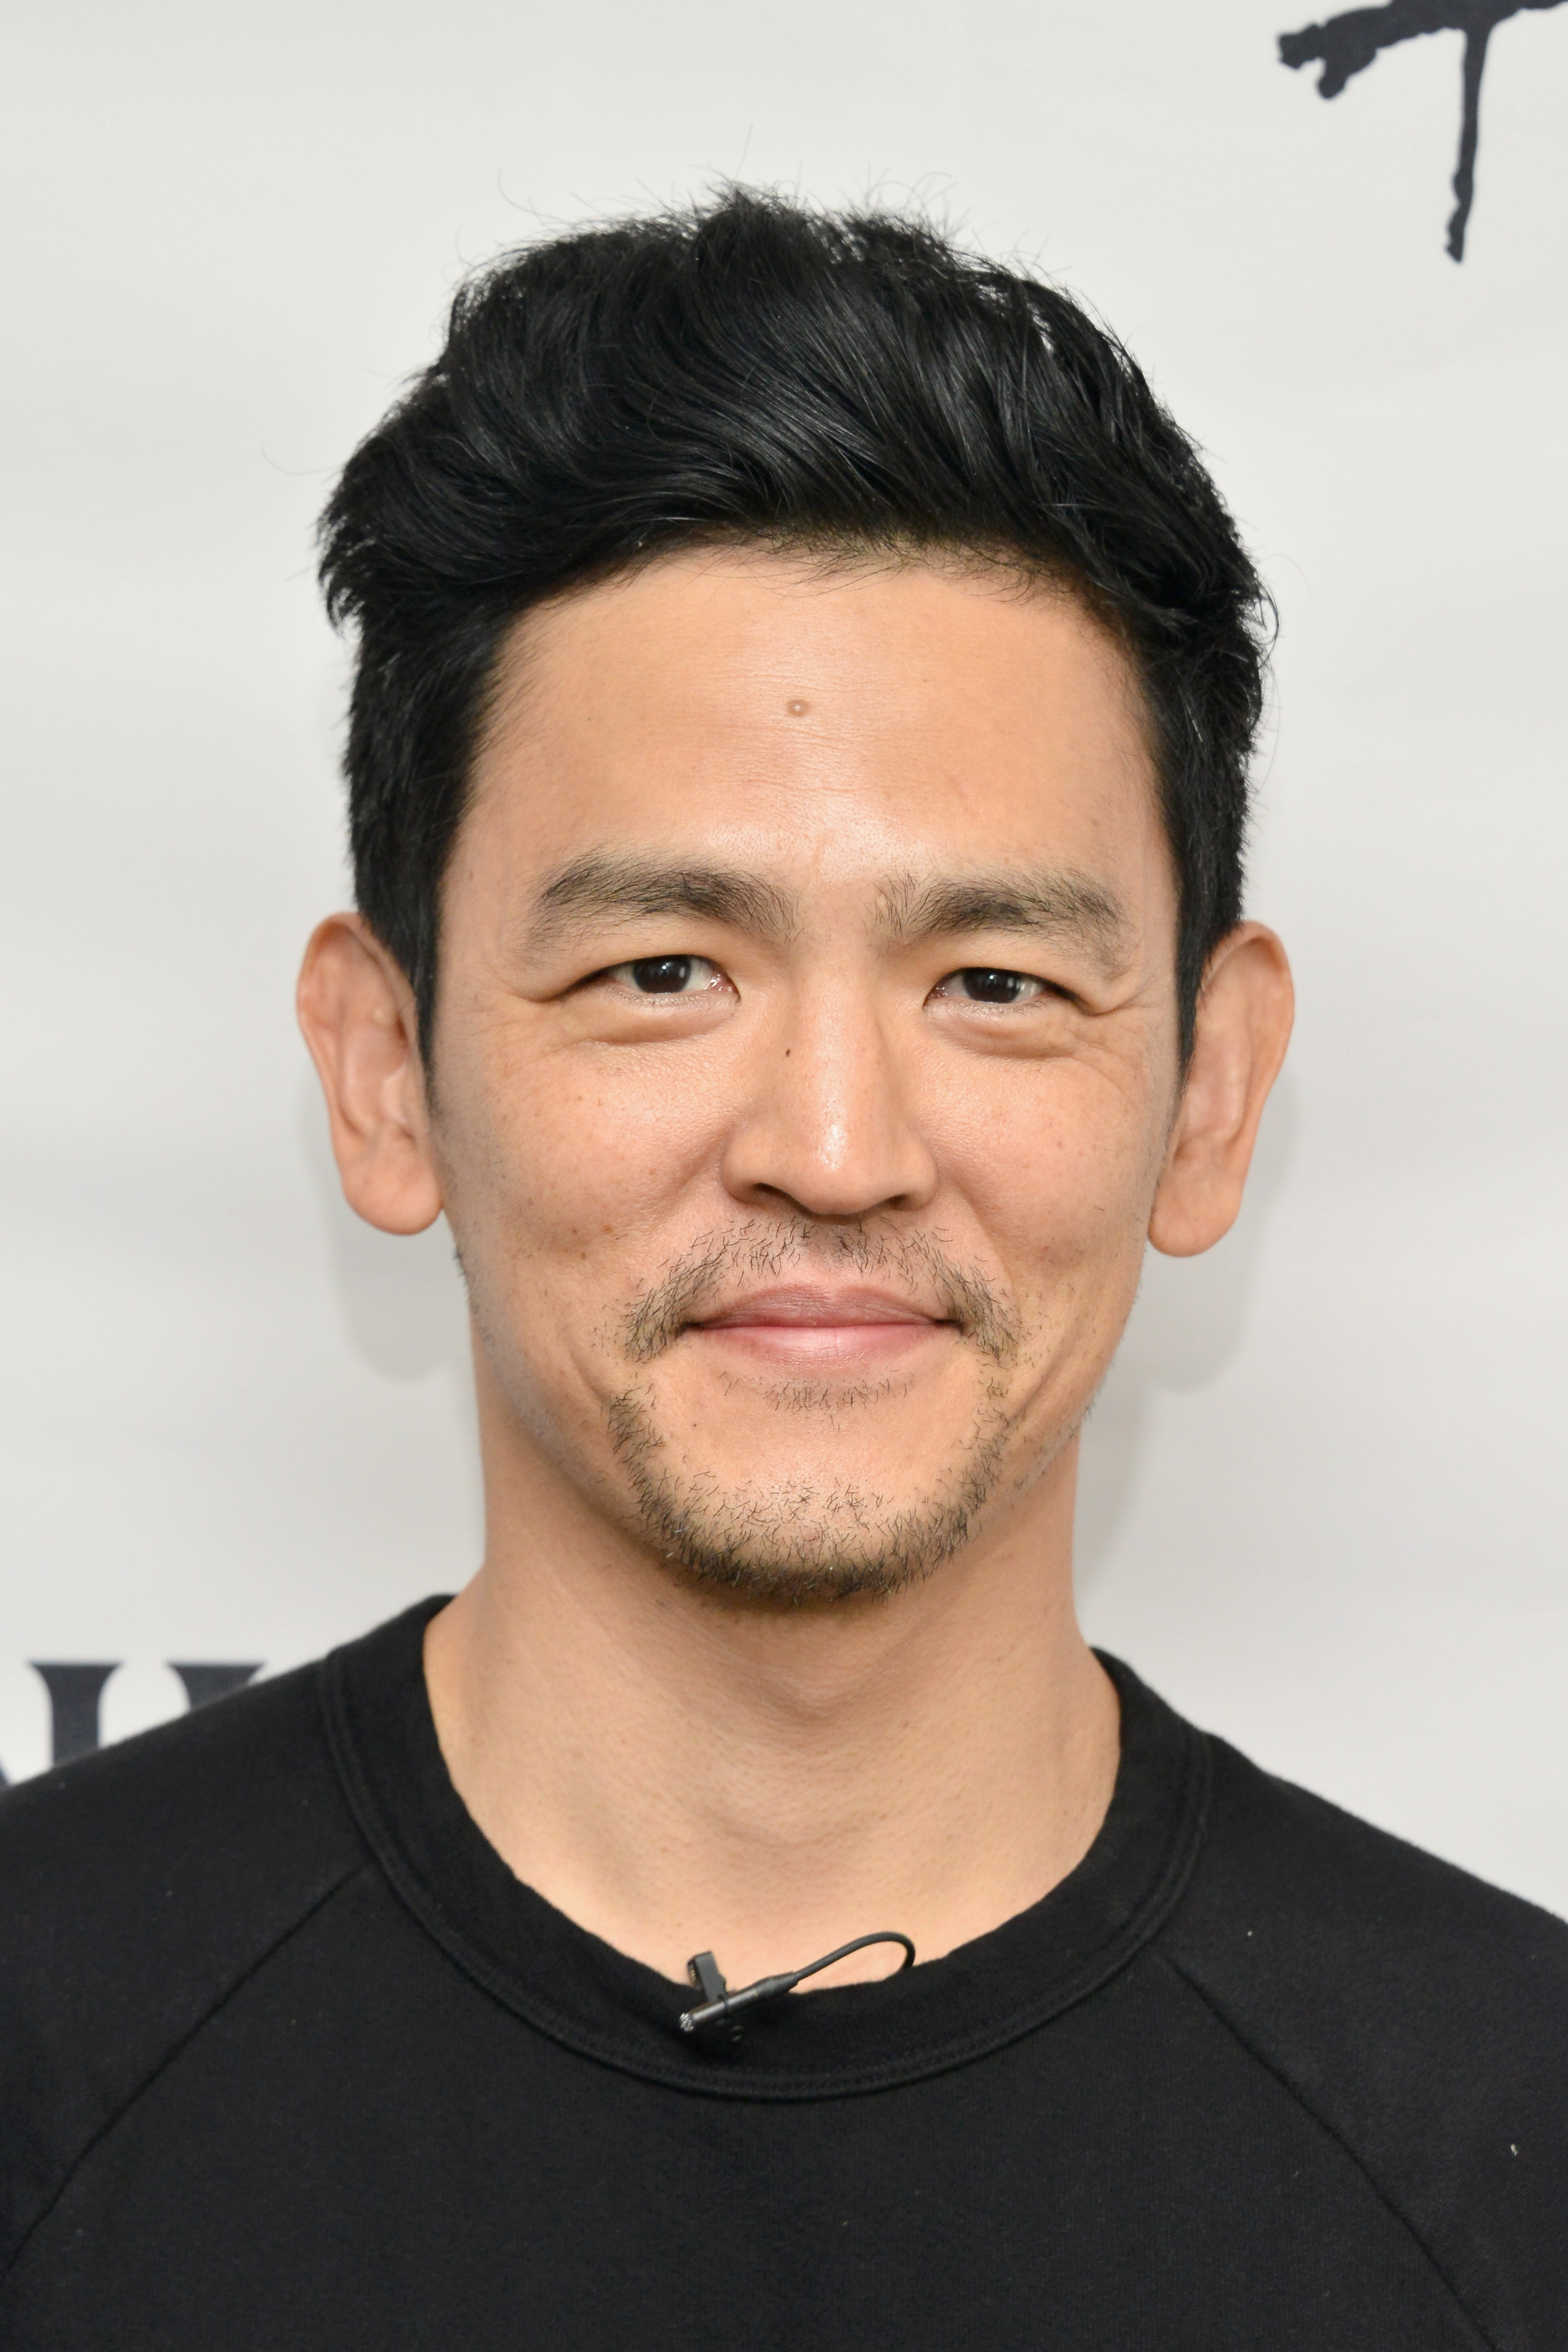 John Cho at the 2016 Los Angeles Film Festival in Culver City, Calif. on June 5, 2016.